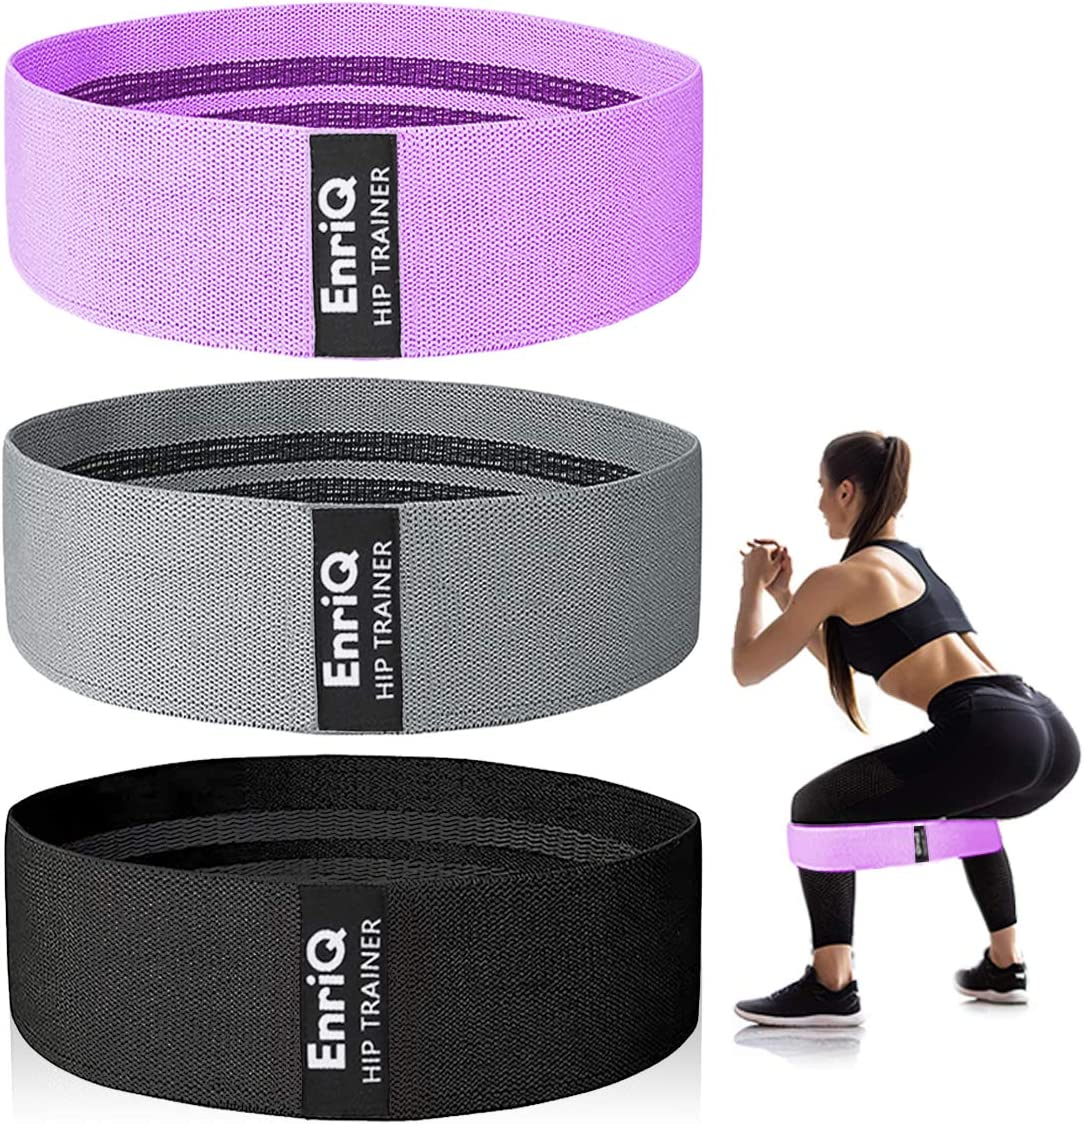 Resistance Bands Booty Bands Hip Bands for Legs and Butt Fabric Exercise Bands Cloth Workout Bands for Women Men Resistance Loops Anti Slip Thick Wide Circle Hips Glute Set of 3